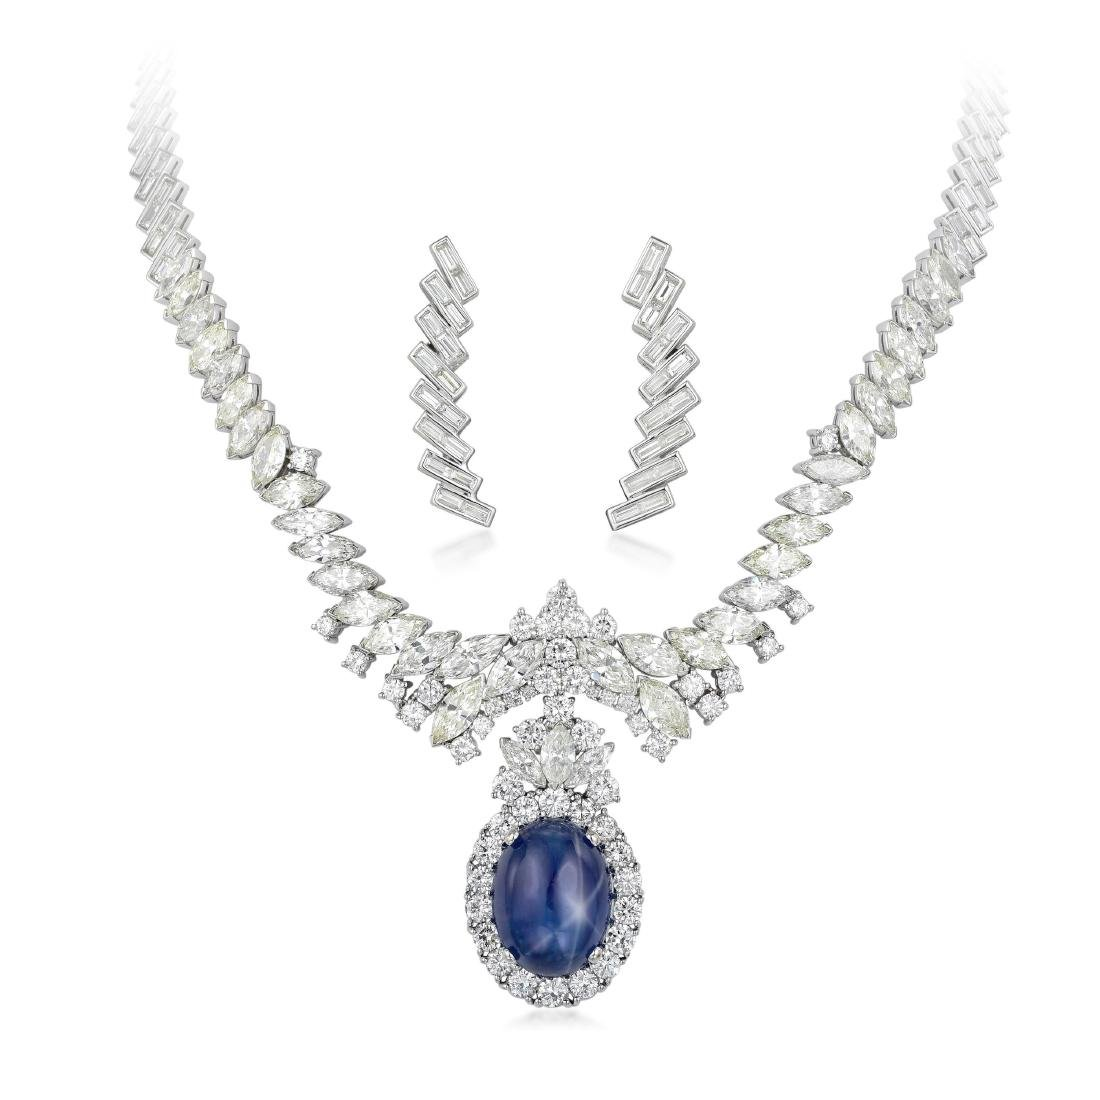 A Star Sapphire and Diamond Necklace and Earrings Set